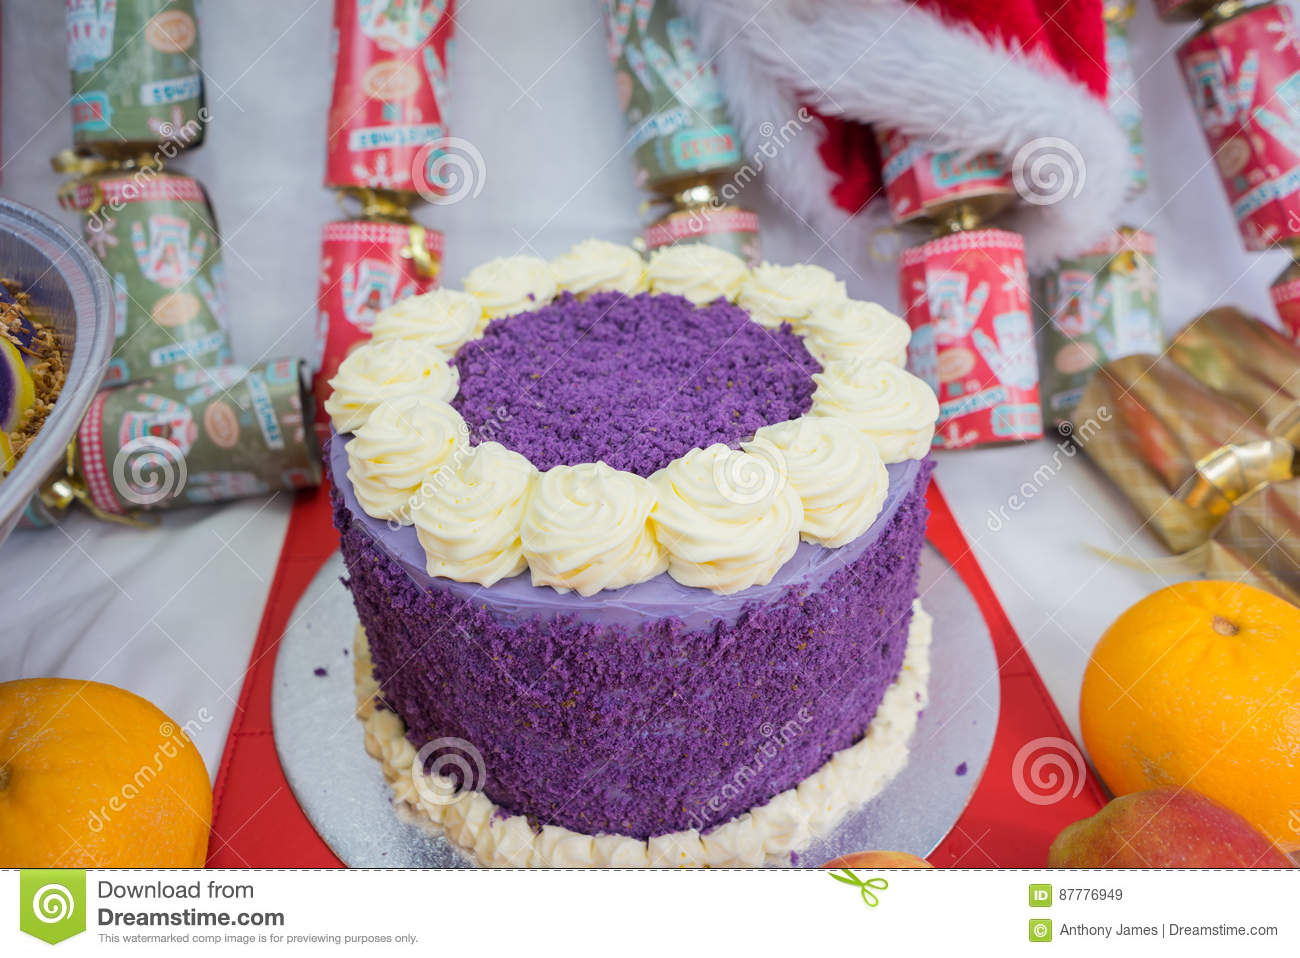 Purple Yam Cake Stock Image Image Of Sweets Sugar Christmas